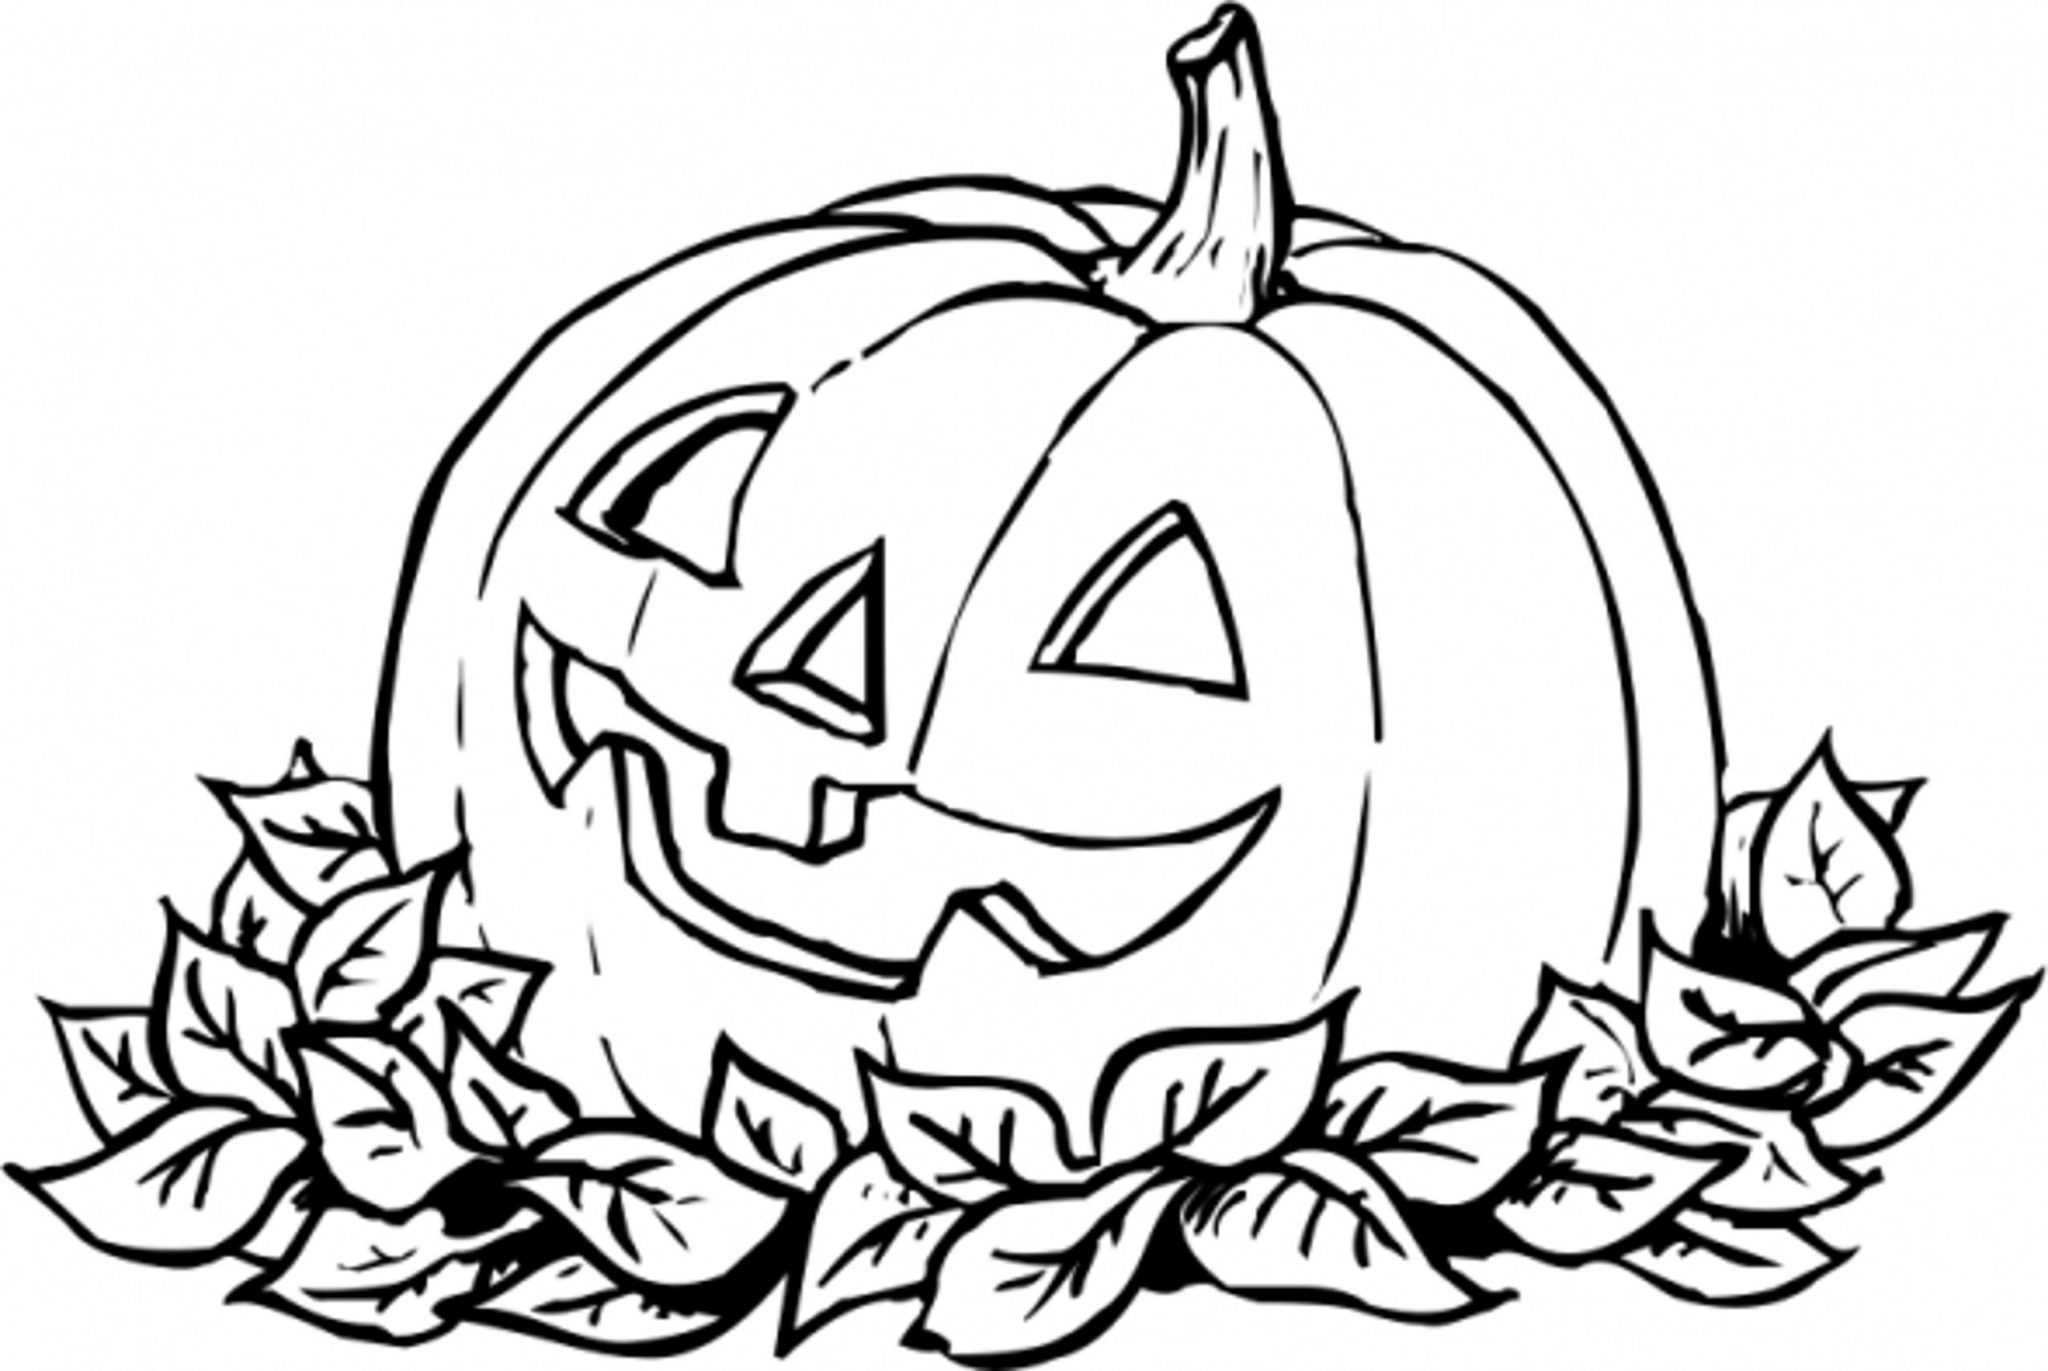 Pumkin coloring pages